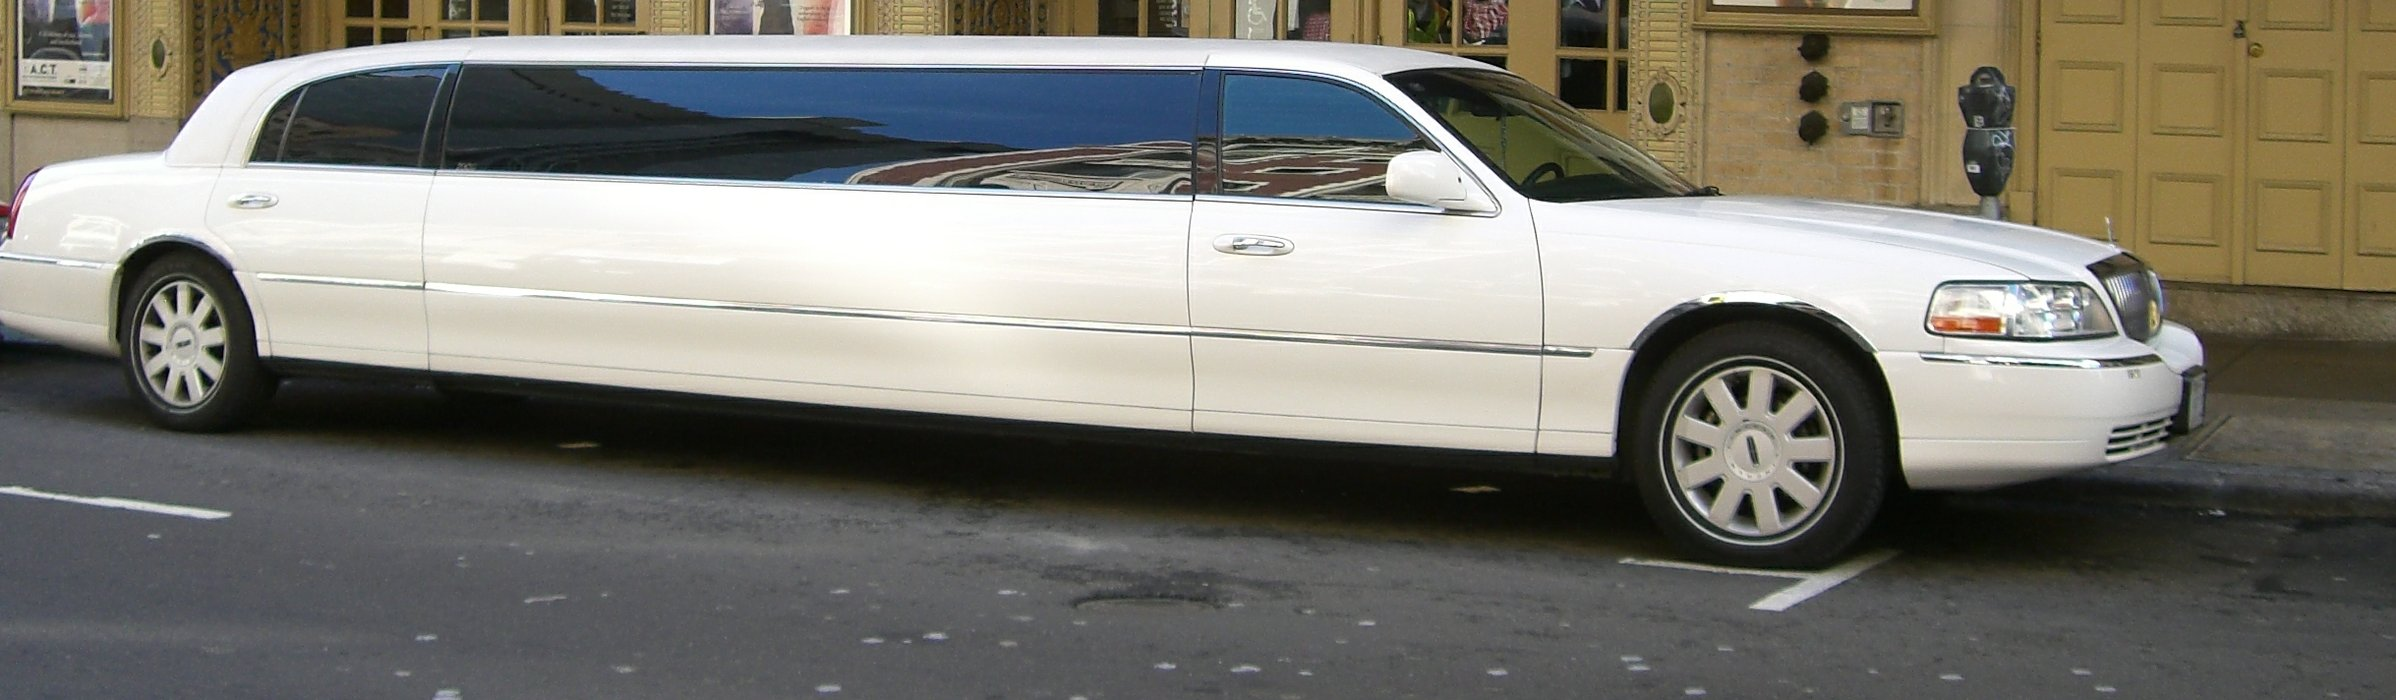 Limo Service Tampa's profile image